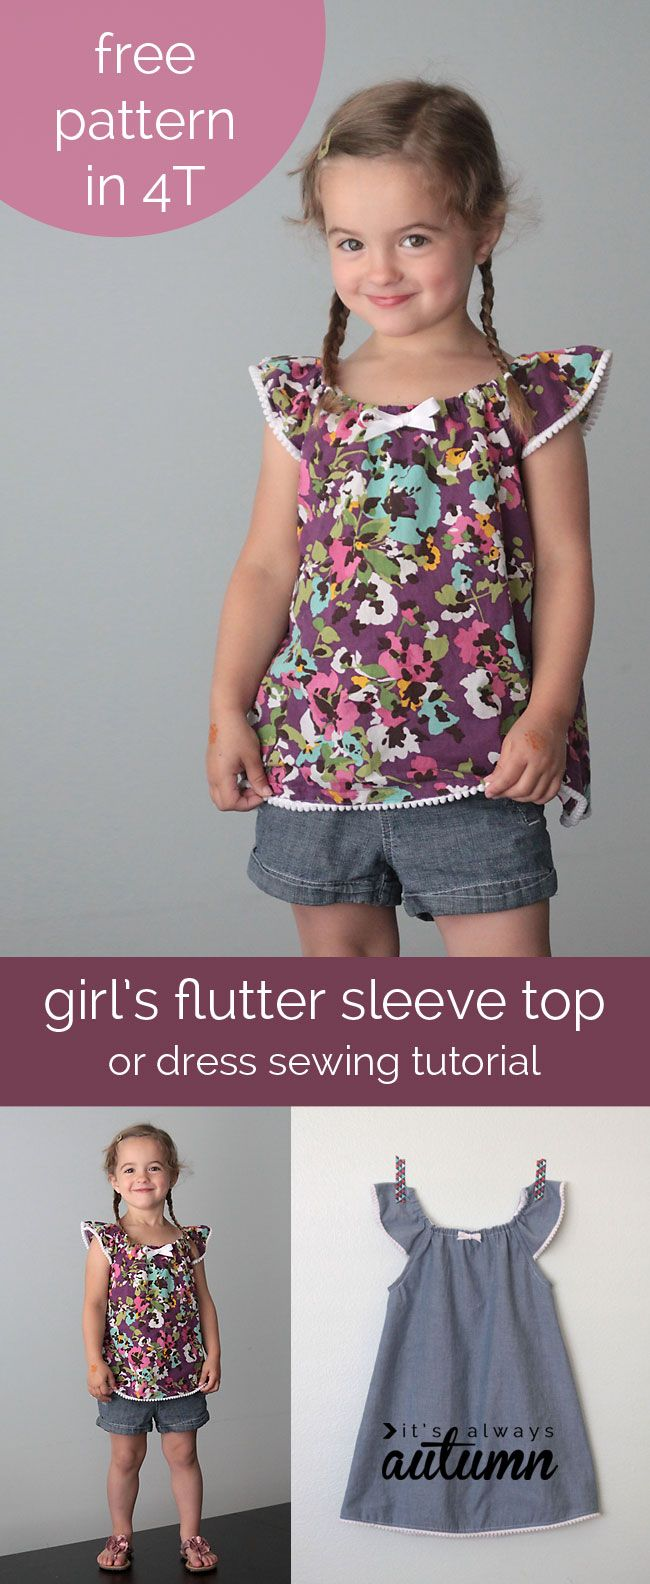 flutter-sleeve-dress-top-how-to-sew-girls-pattern; free pattern